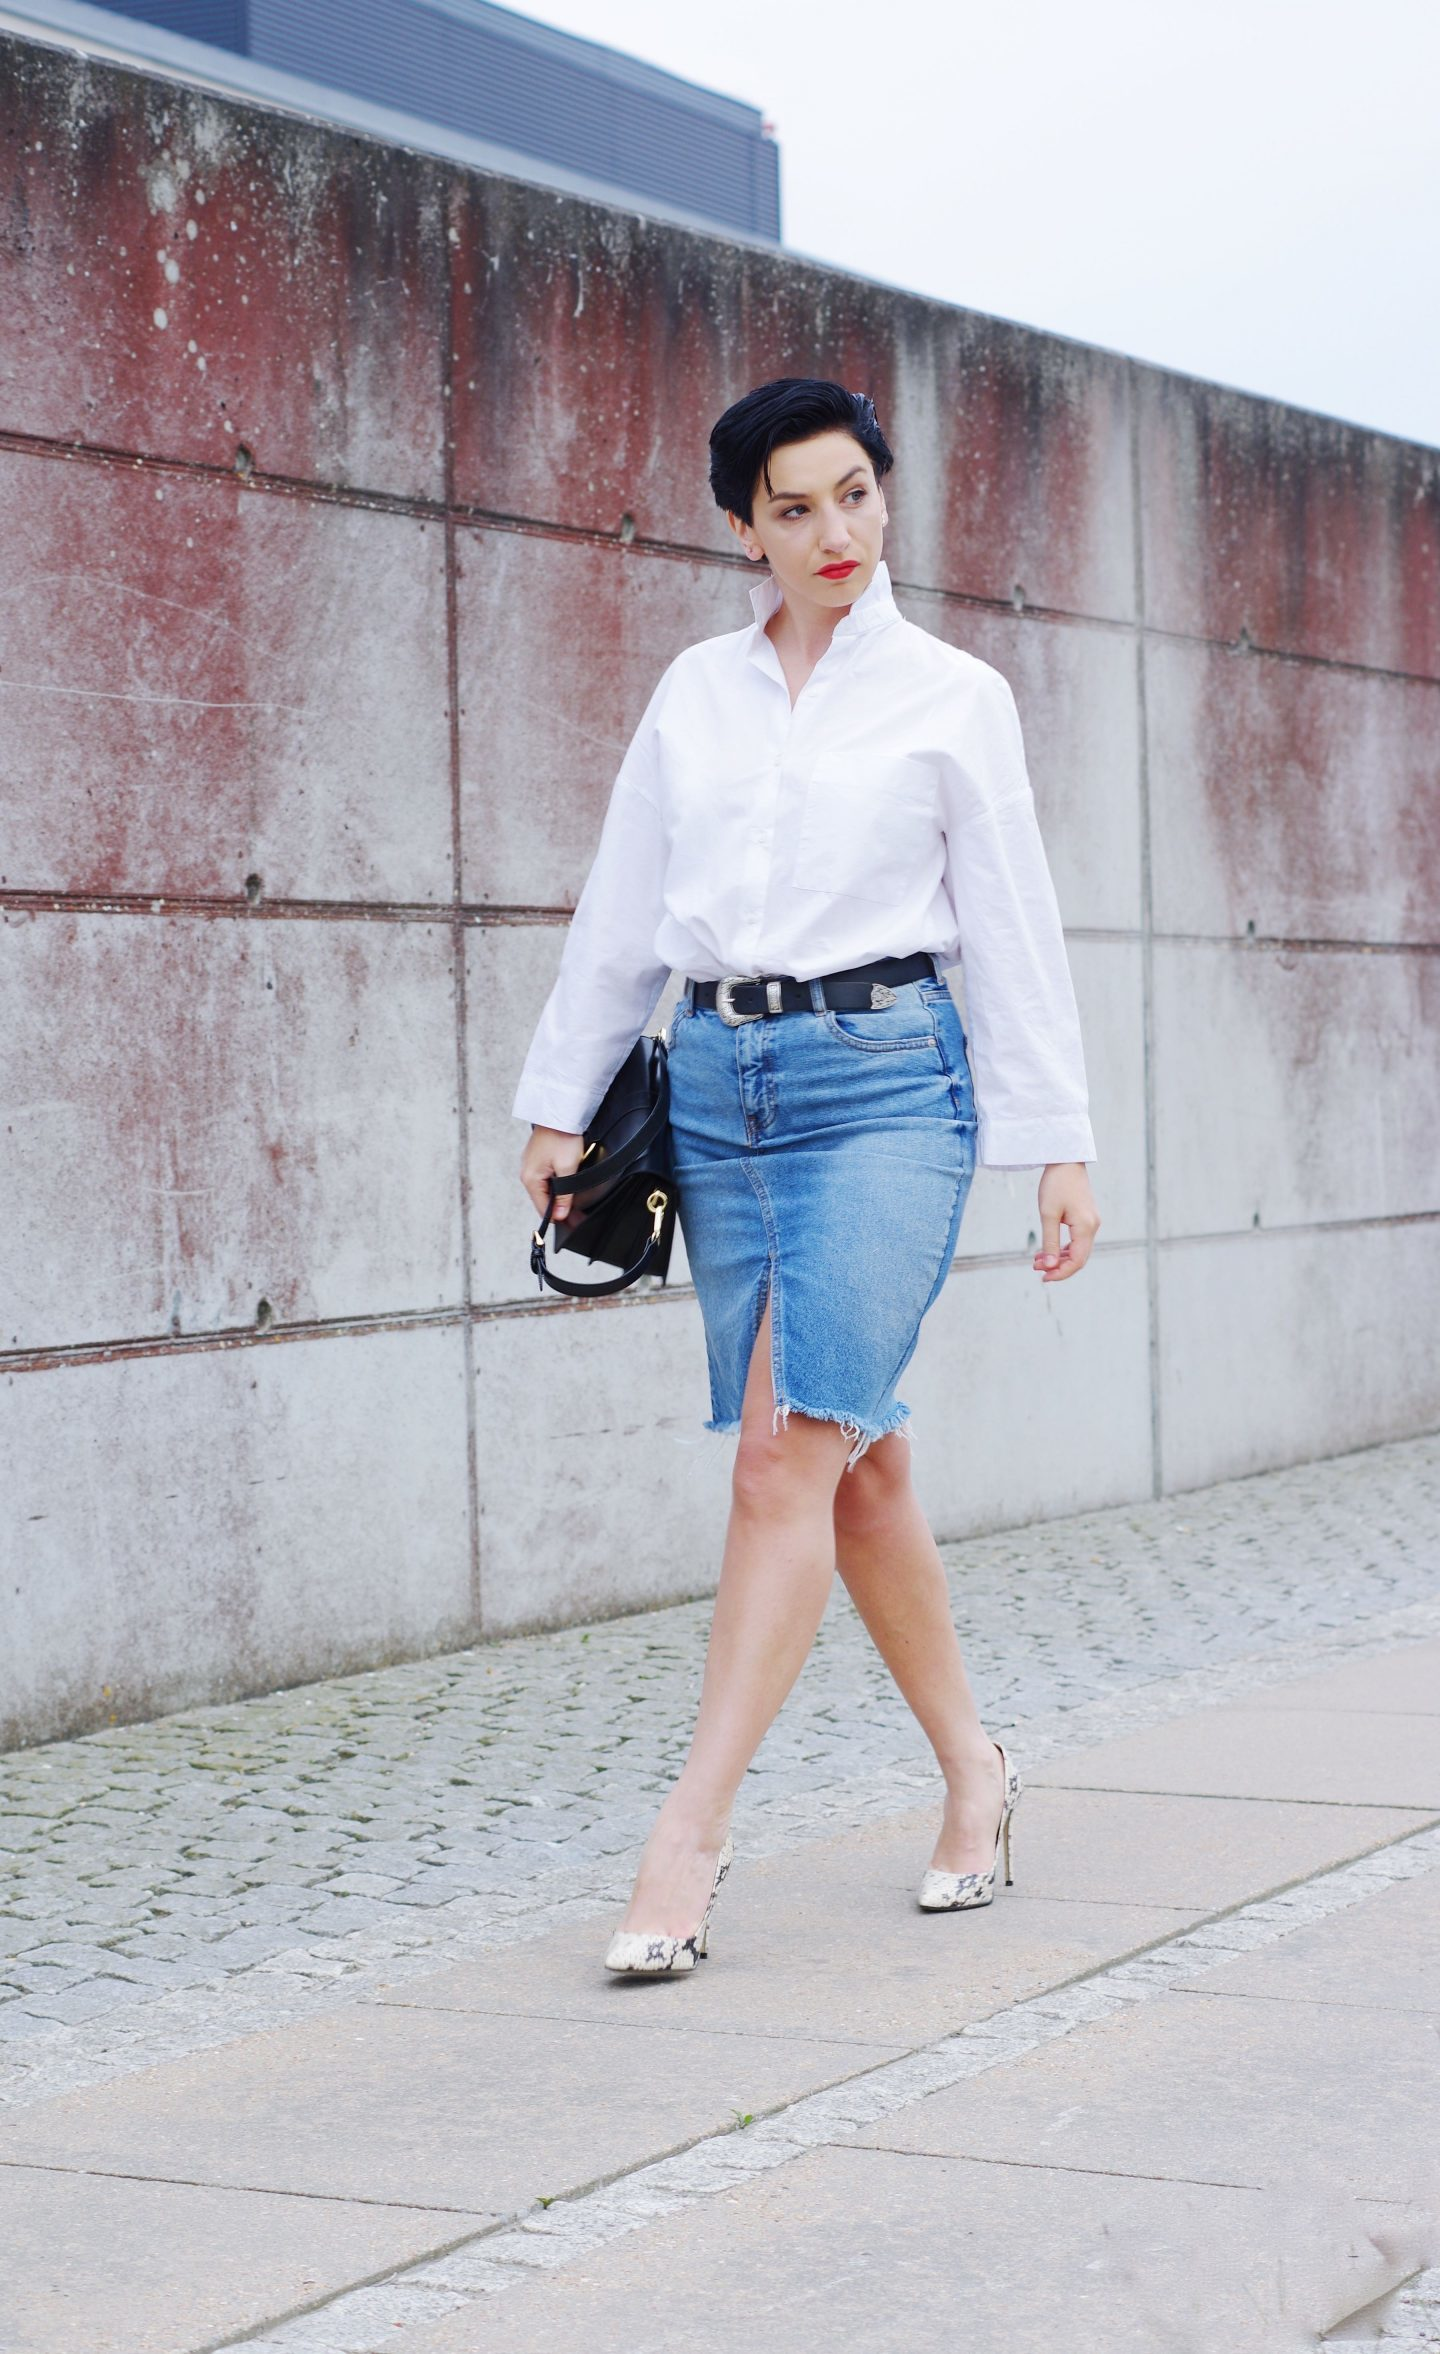 d95a99a0d679f1 What To Wear With Jeans Skirt | Saddha